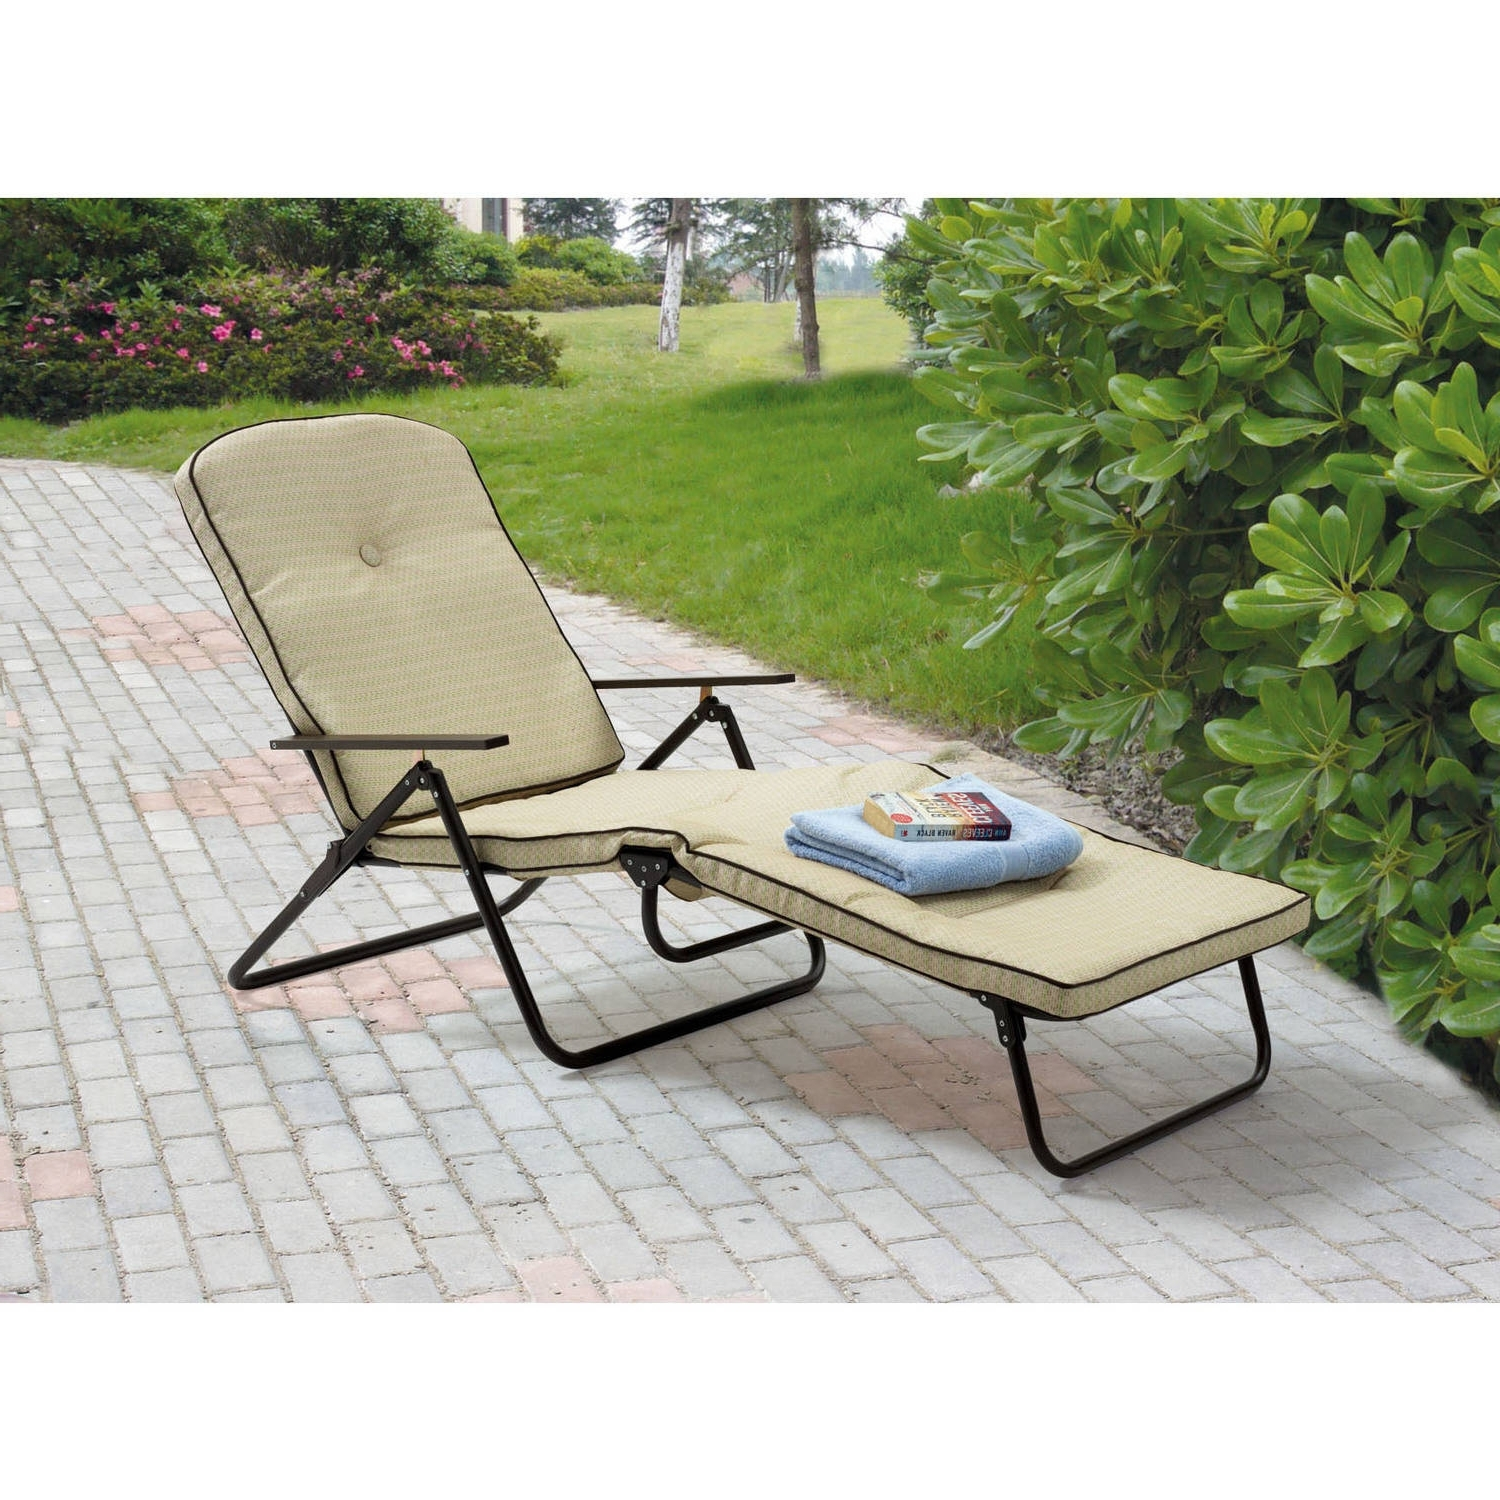 Mainstays Sand Dune Outdoor Padded Folding Chaise Lounge, Tan Pertaining To Well Known Folding Chaise Lounges (View 9 of 15)